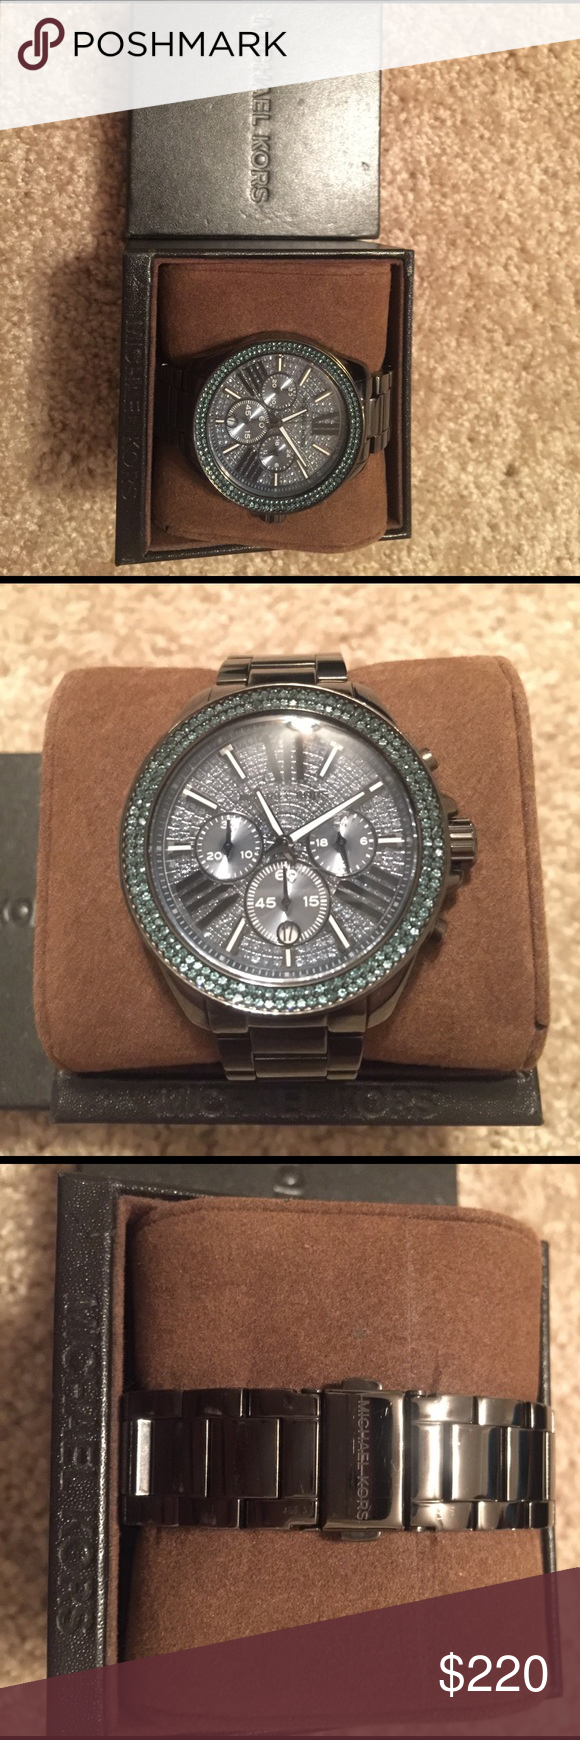 Michael Kors unisex watch I have a nice Michael Kors watch that's a unisex the watch is very nice and in mint condition it has blue diamond cuts works perfectly absolutely nothing wrong with it comes with original box Michael Kors Accessories Watches